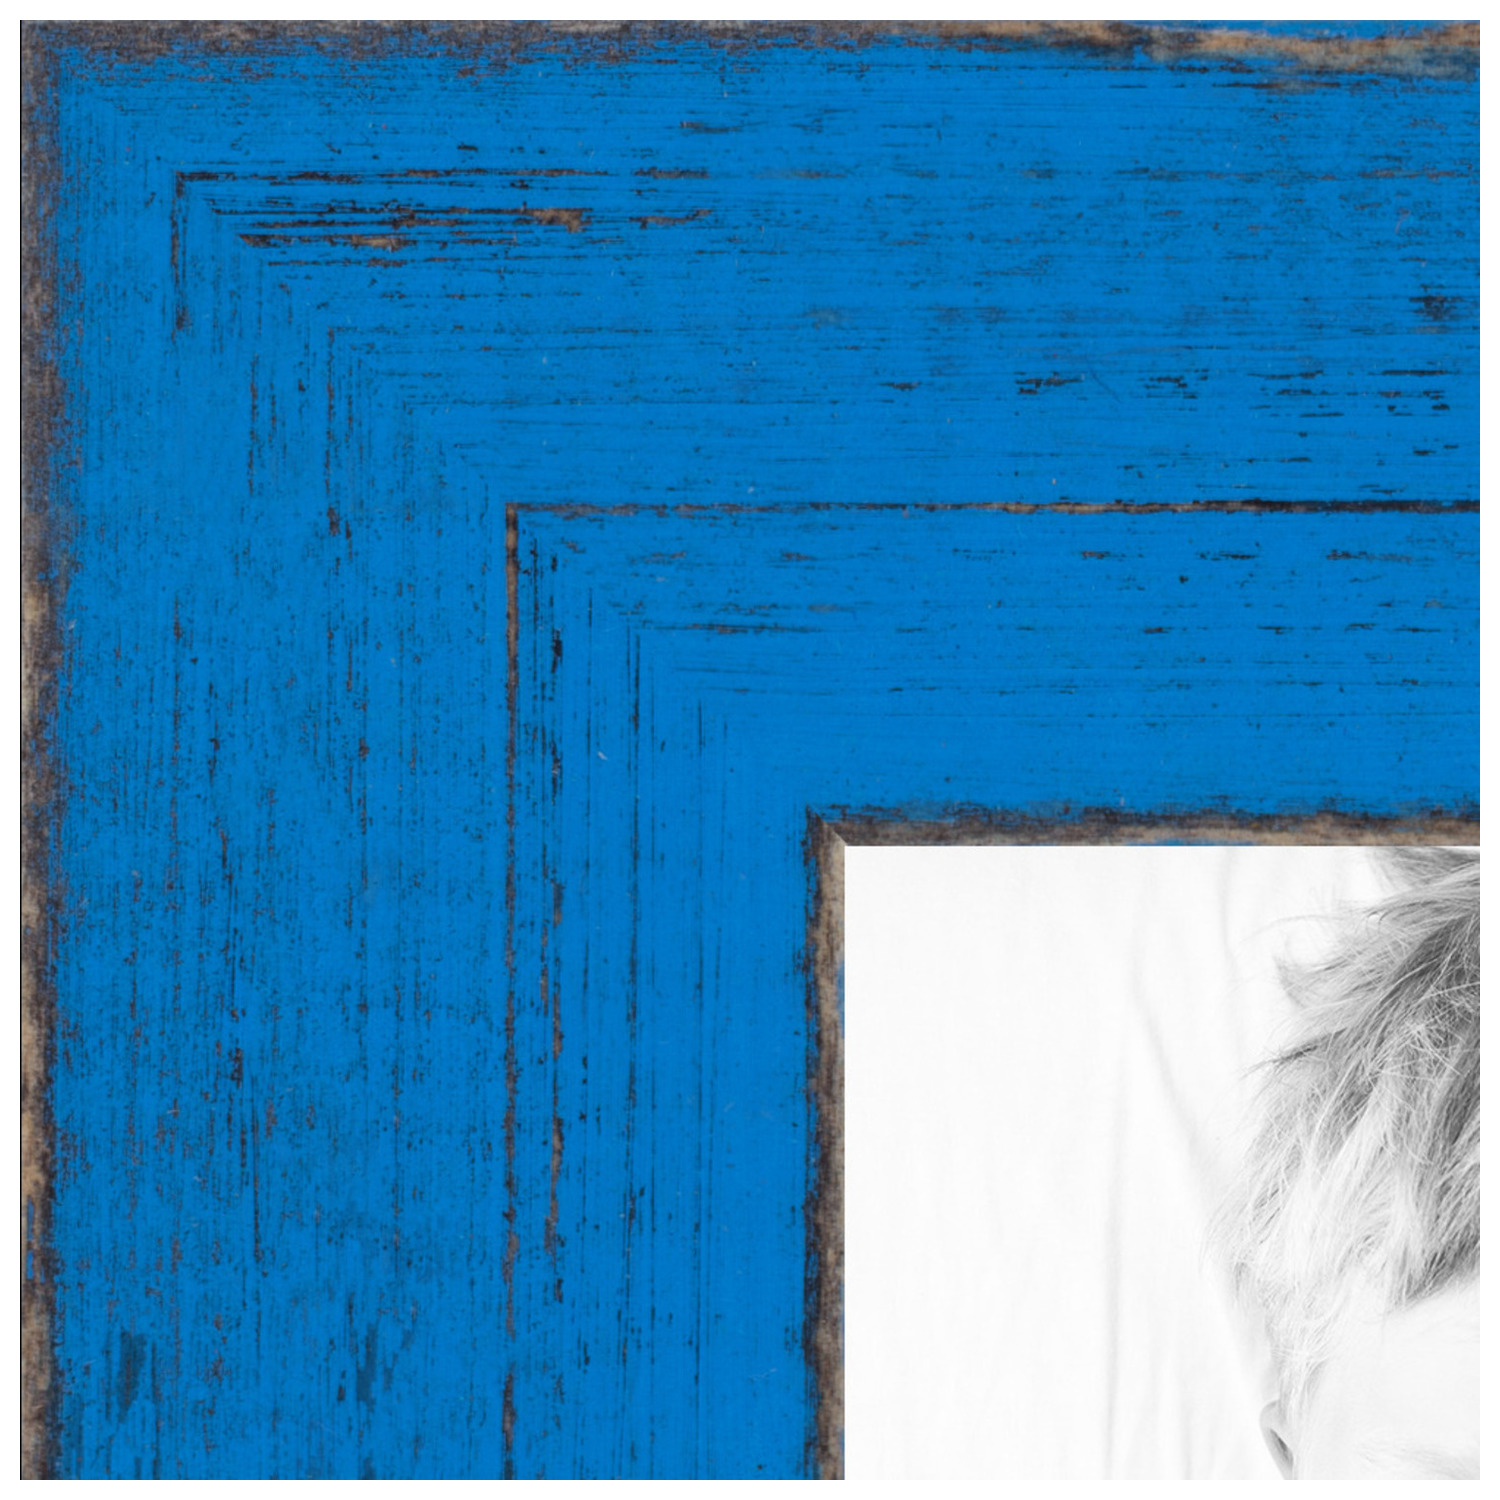 arttoframes 8x20 inch blue picture frame this blue wood poster frame is great for your art or photos comes with regular glass 4751